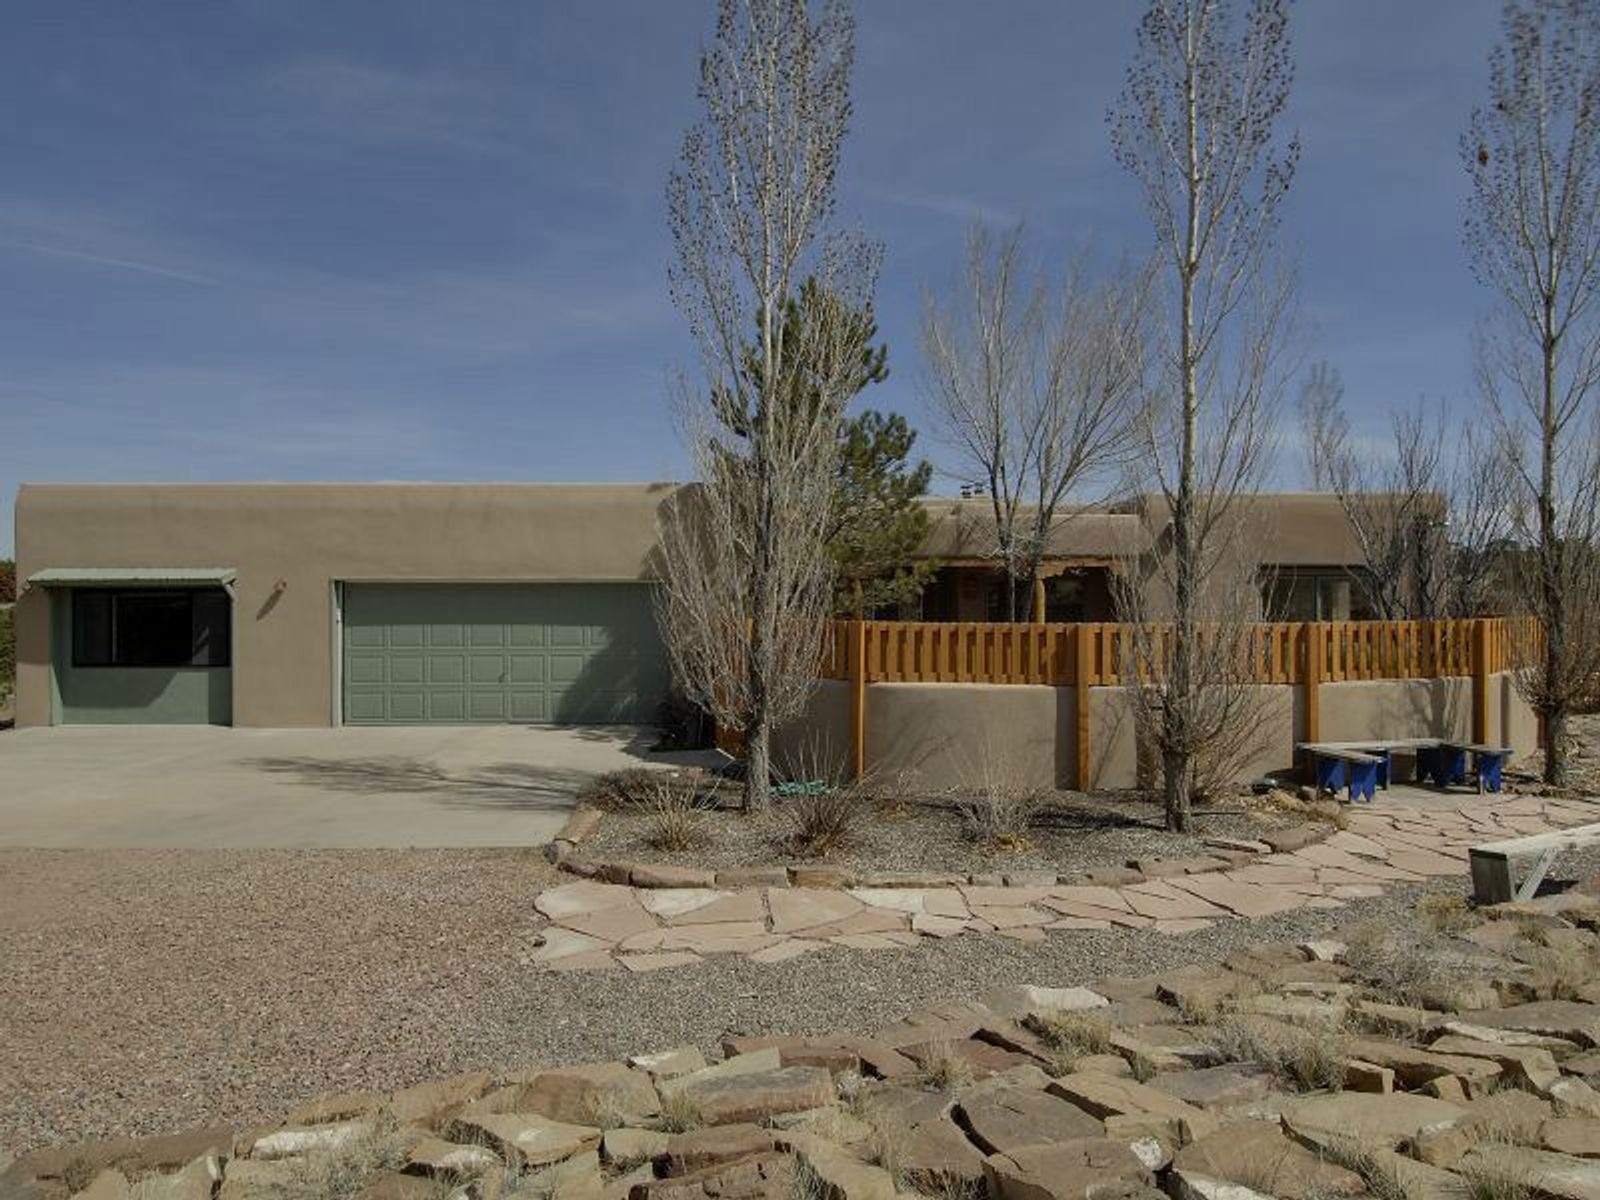 10 Recado Road, Santa Fe NM Single Family Home - Santa Fe Real Estate